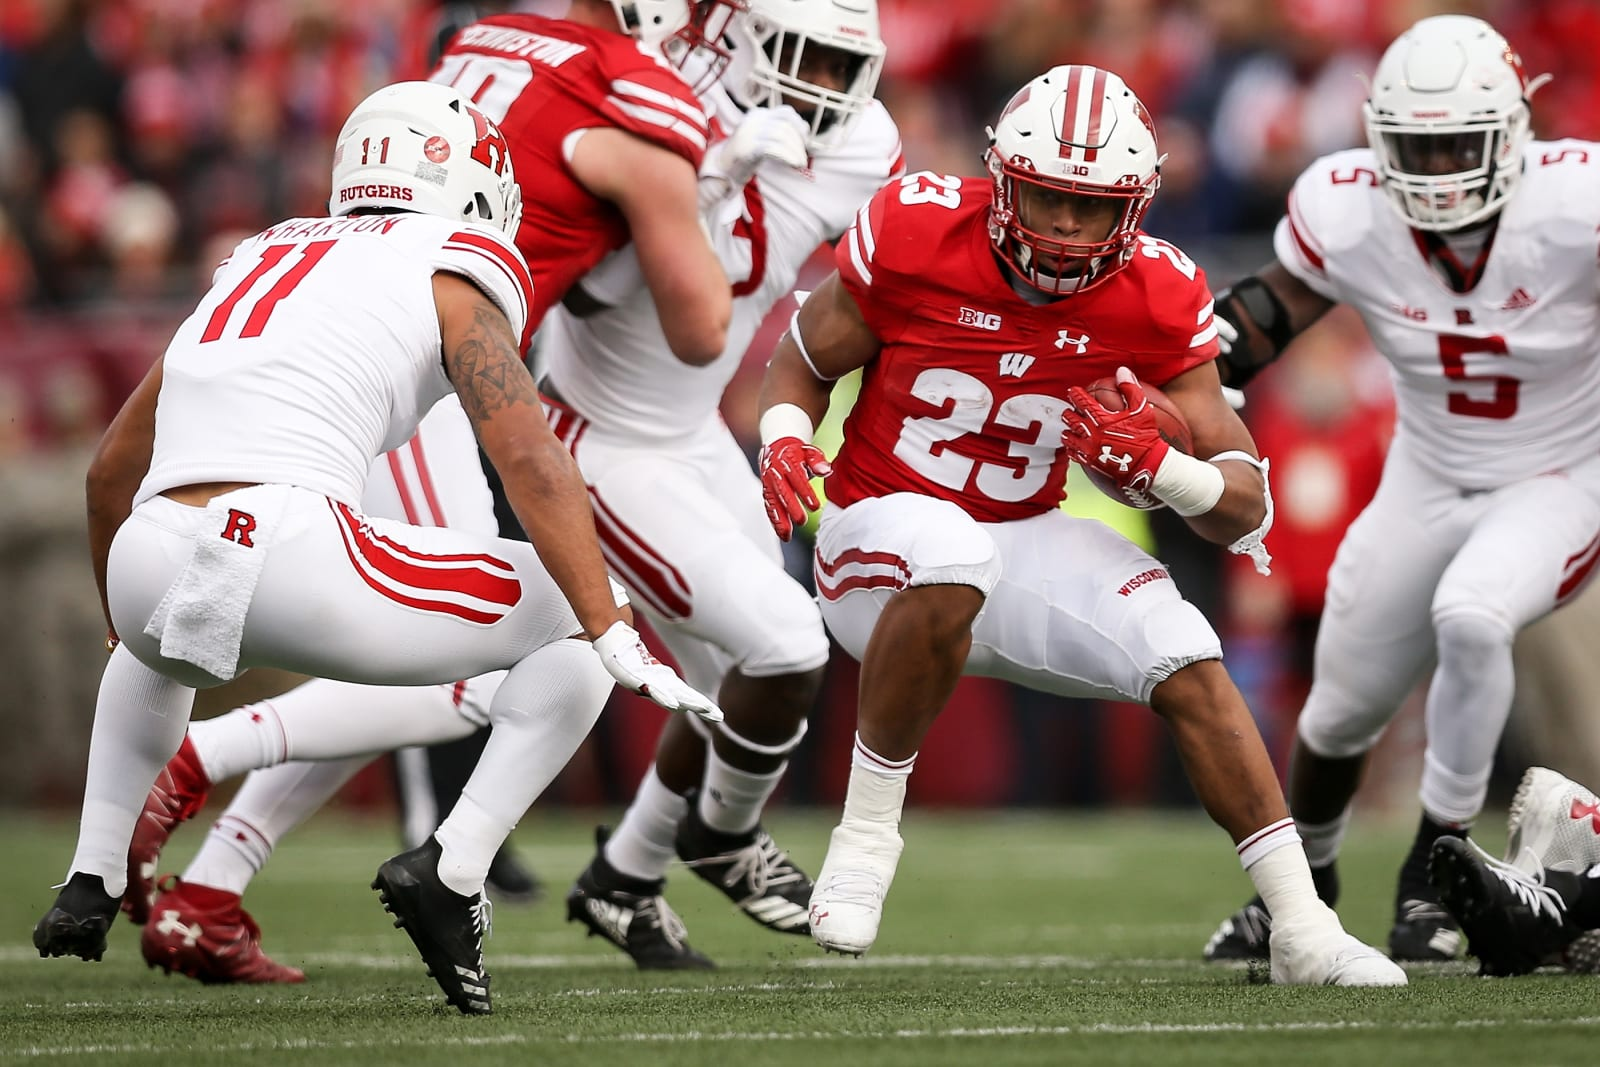 Wisconsin Football - Jonathan Taylor